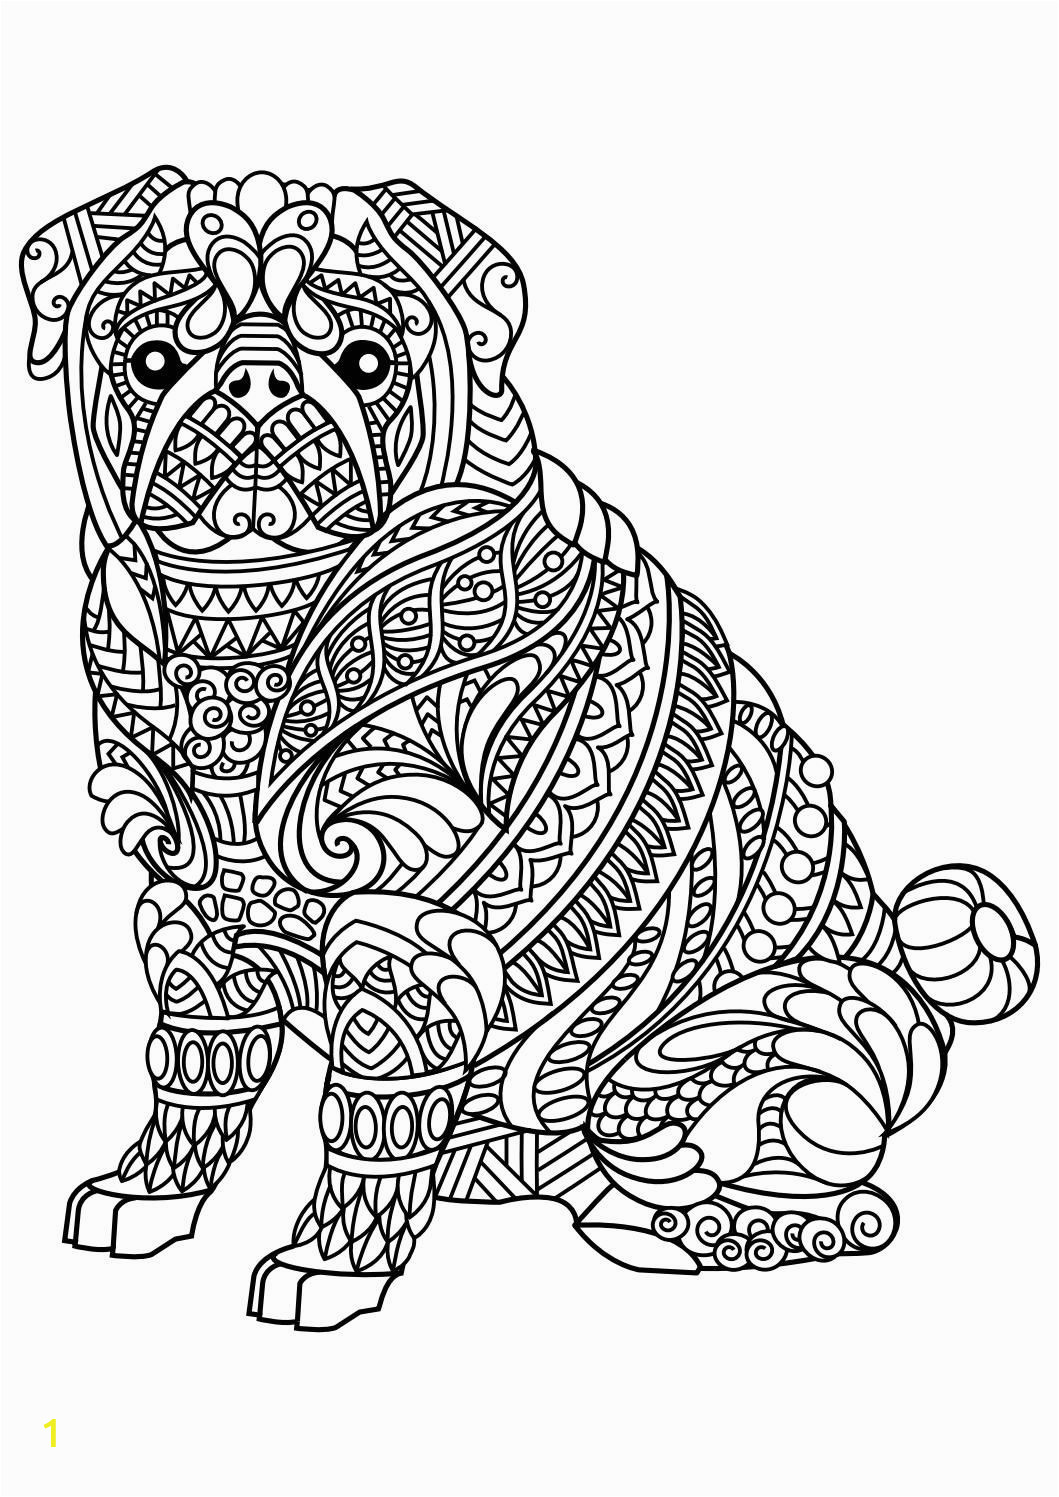 Dog Online Coloring Pages Animal Coloring Pages Pdf